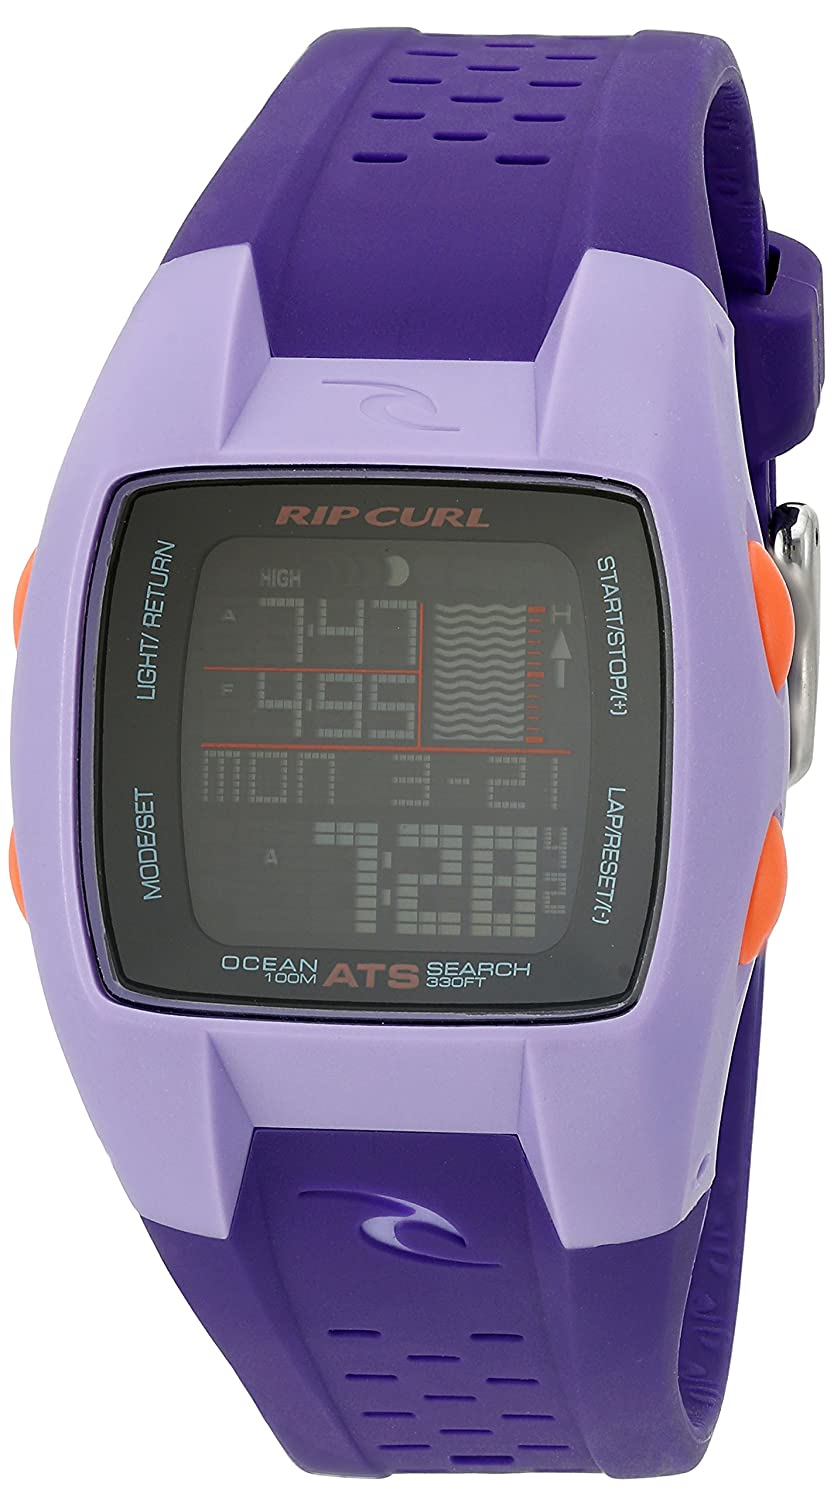 gear image surfdome at snowboard surf uk watches club all